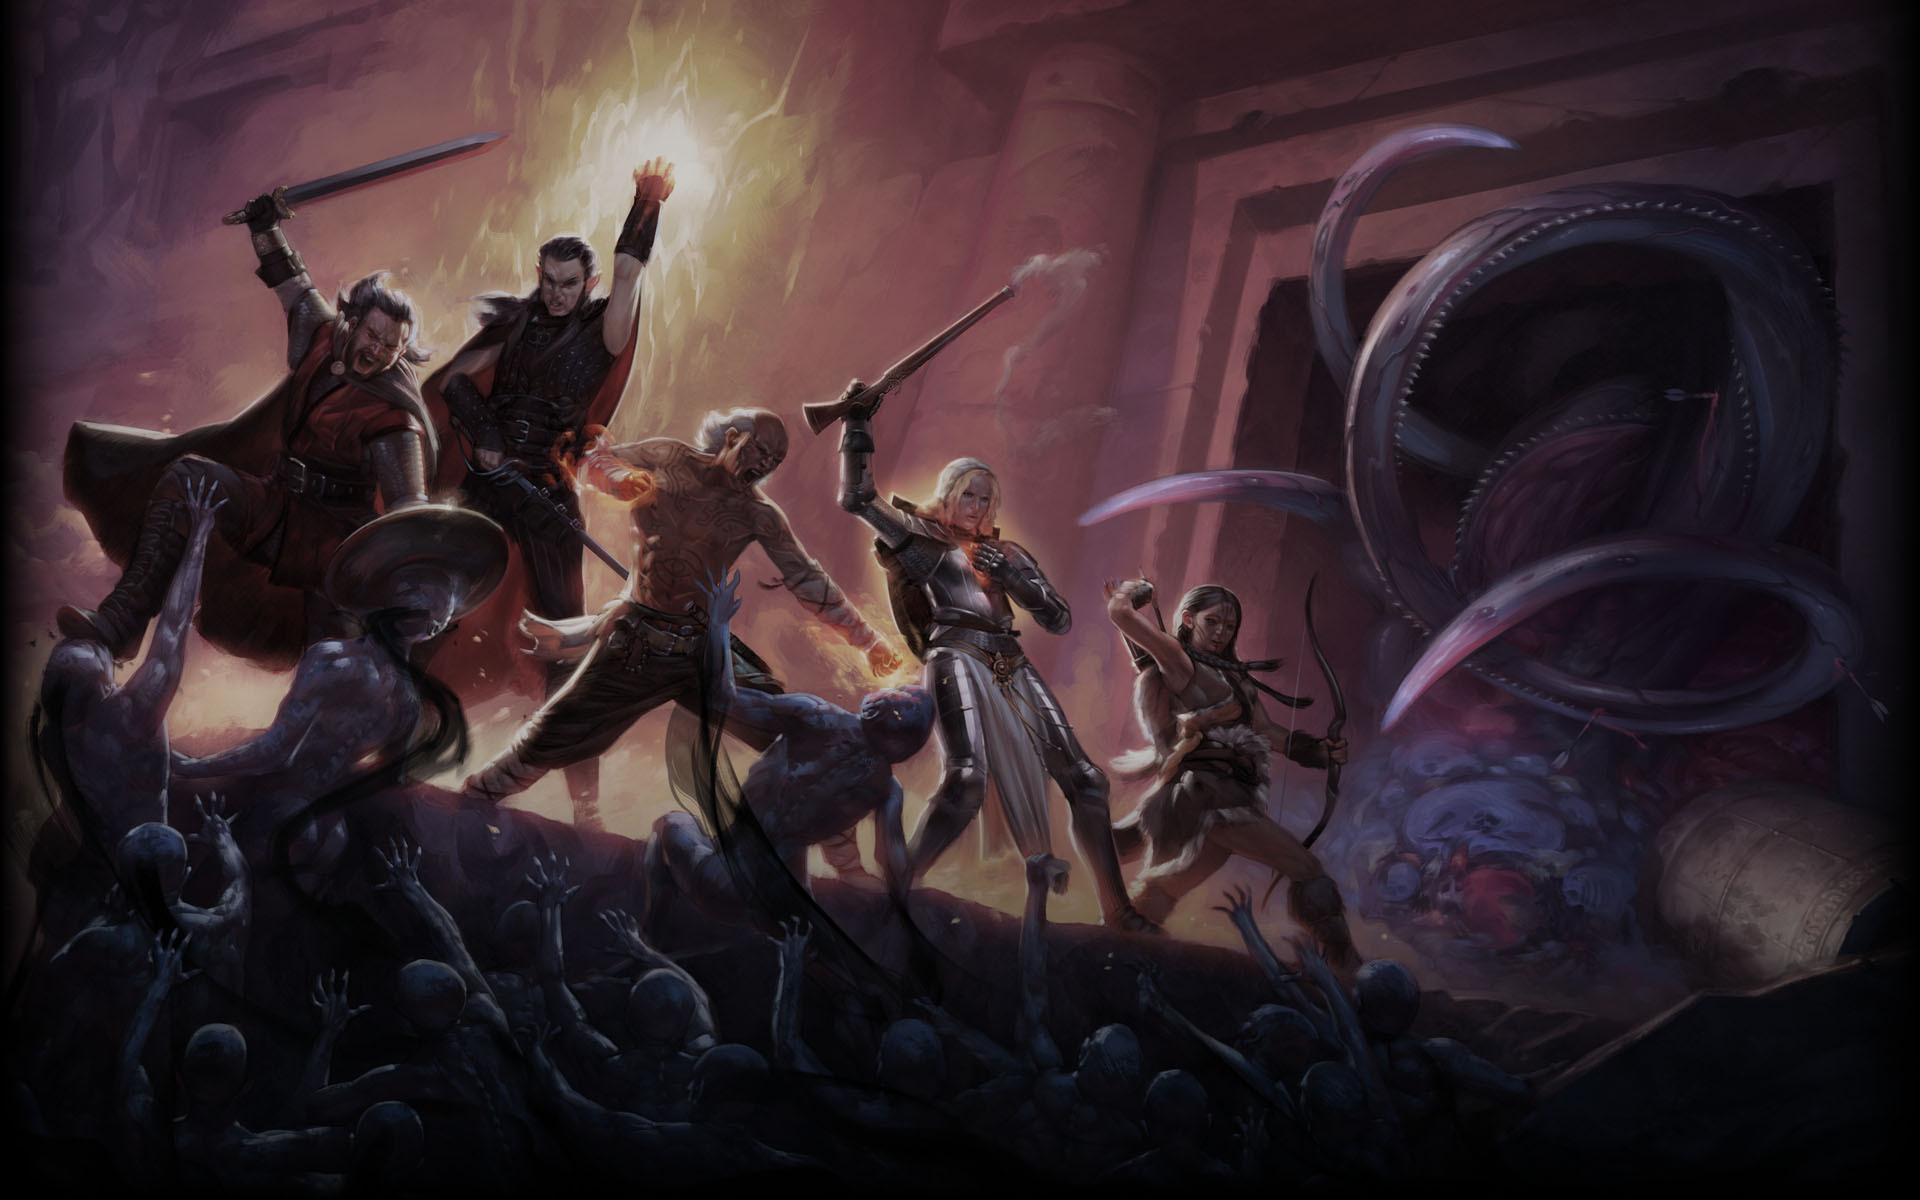 Pillars Of Eternity Wallpaper: Pillars Of Eternity HD Wallpaper